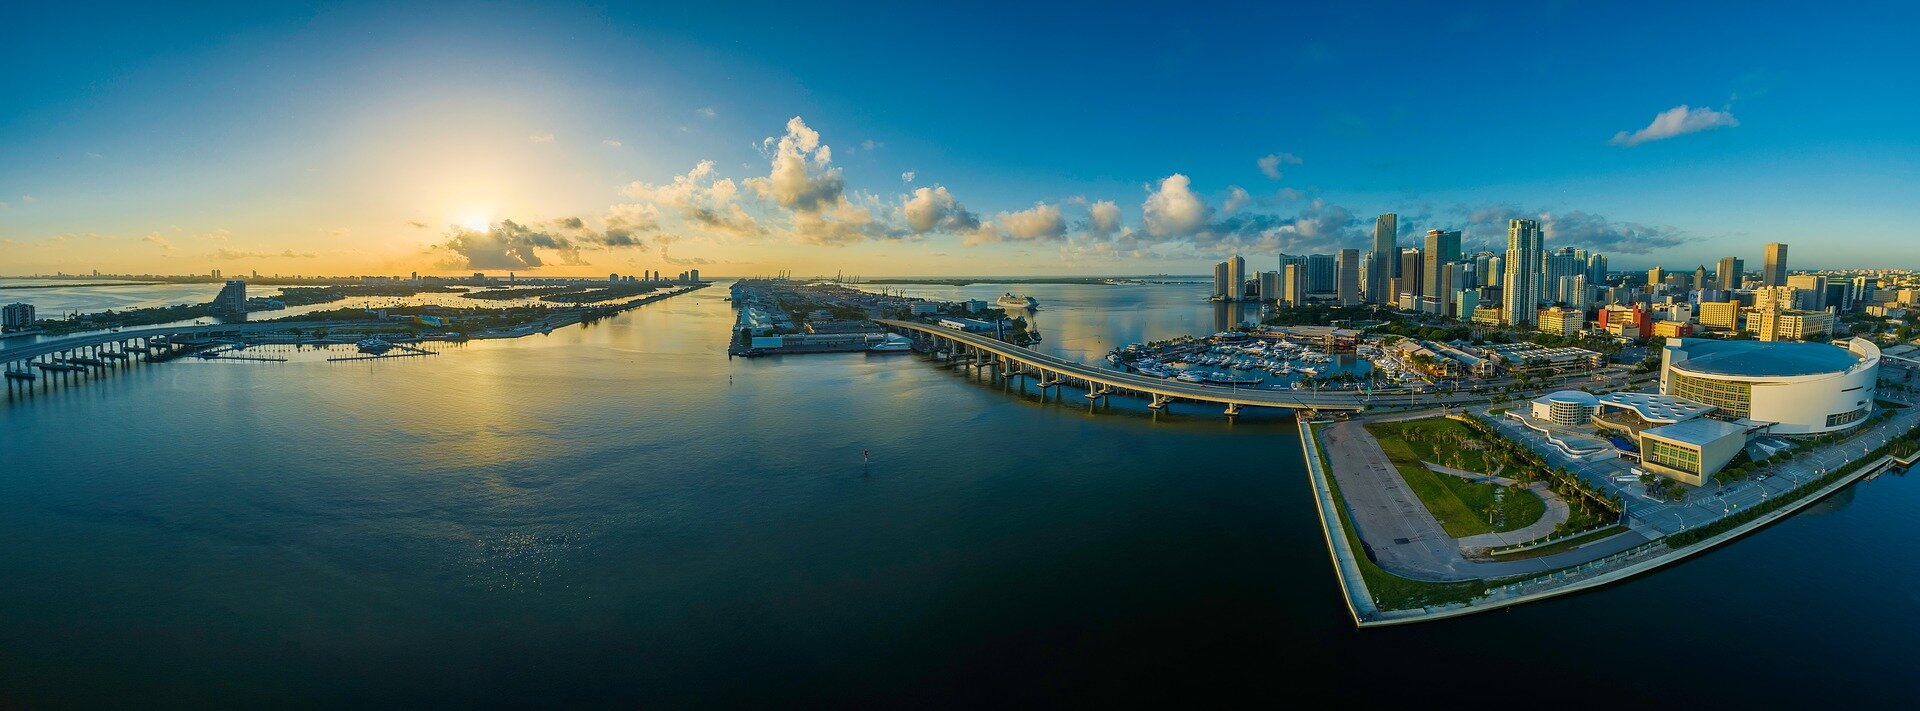 Study reveals origin of 'motion of the ocean' in the straits of Florida